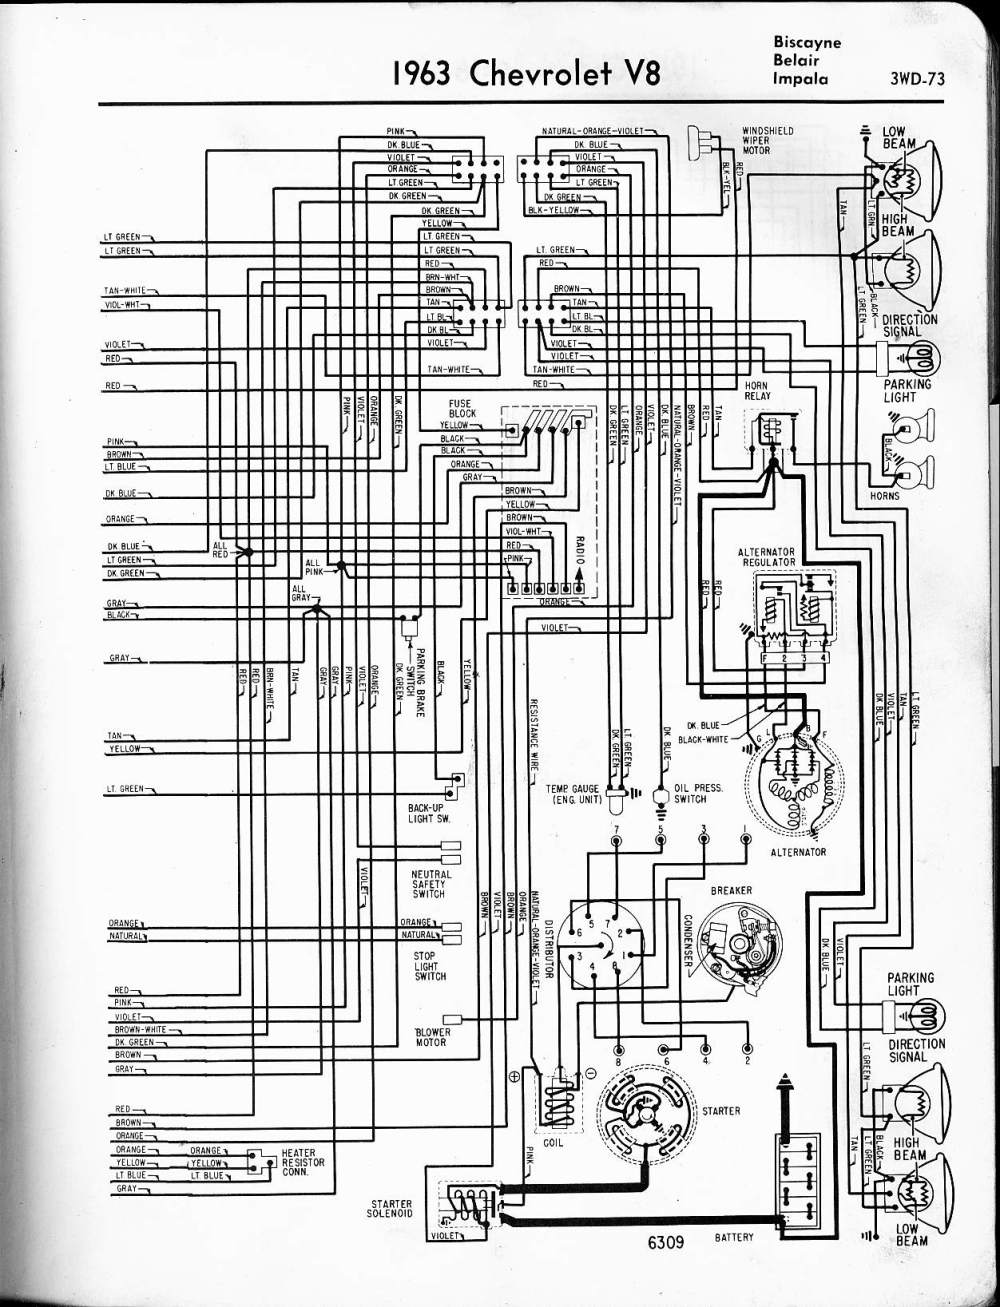 medium resolution of 57 65 chevy wiring diagrams 1964 impala tail light wiring diagram 1963 v8 biscayne belair